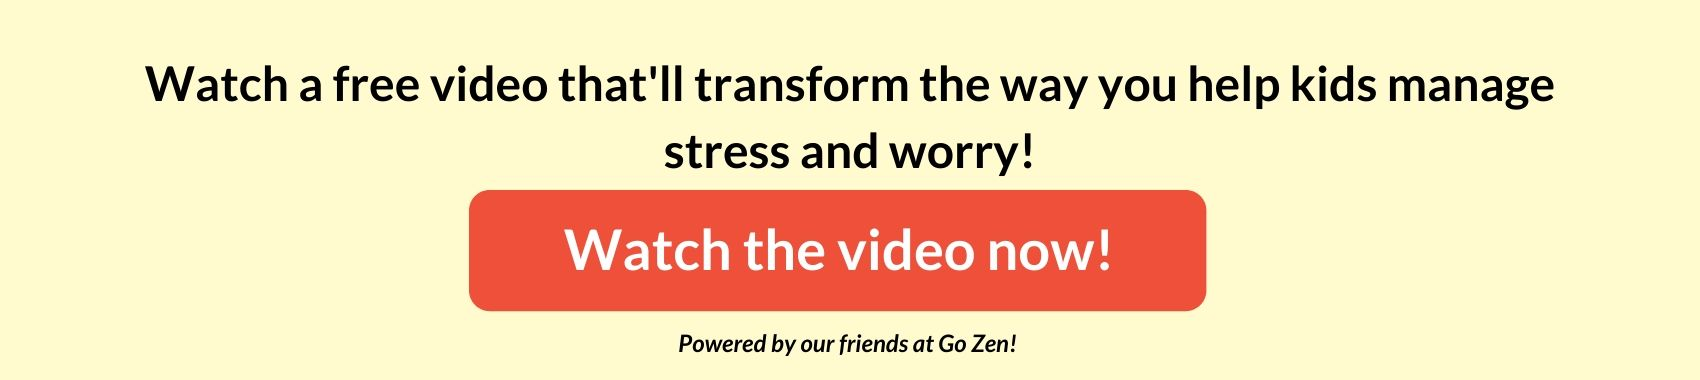 Watch a Free Video at Go Zen